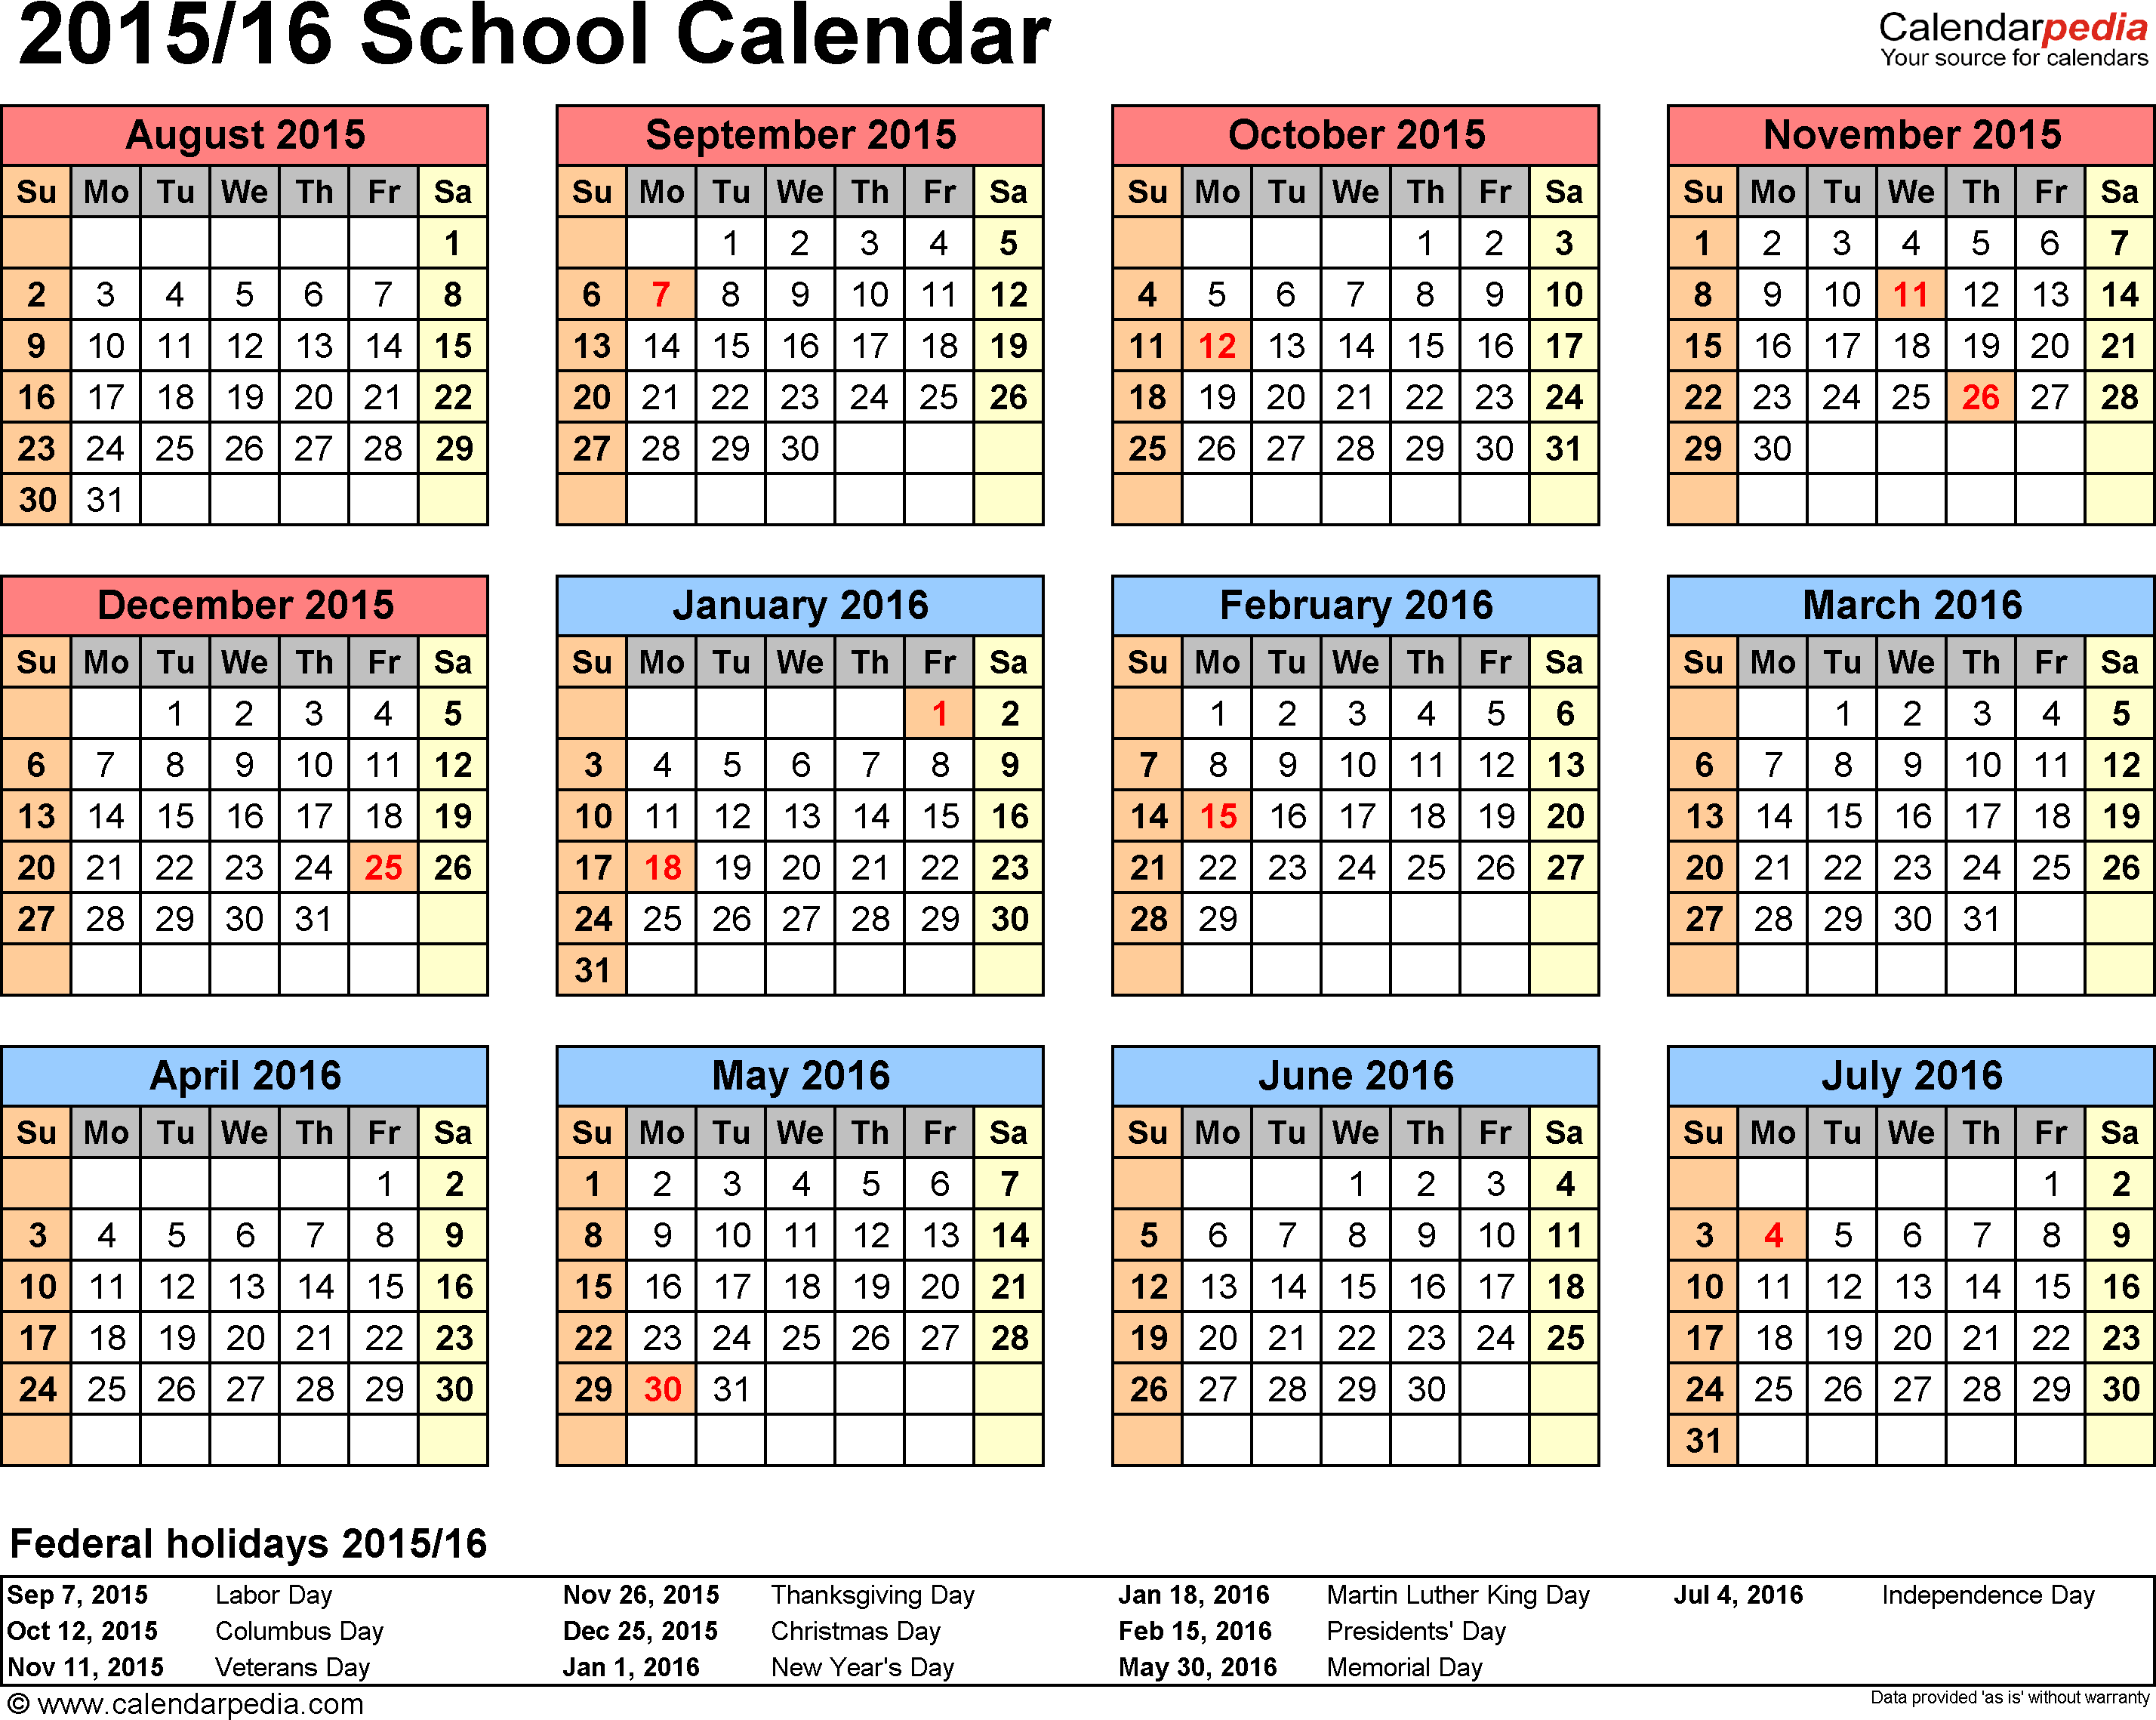 Download Template 4: School calendar 2015/16 for Microsoft Excel (.xlsx file), landscape, 1 page, year at a glance